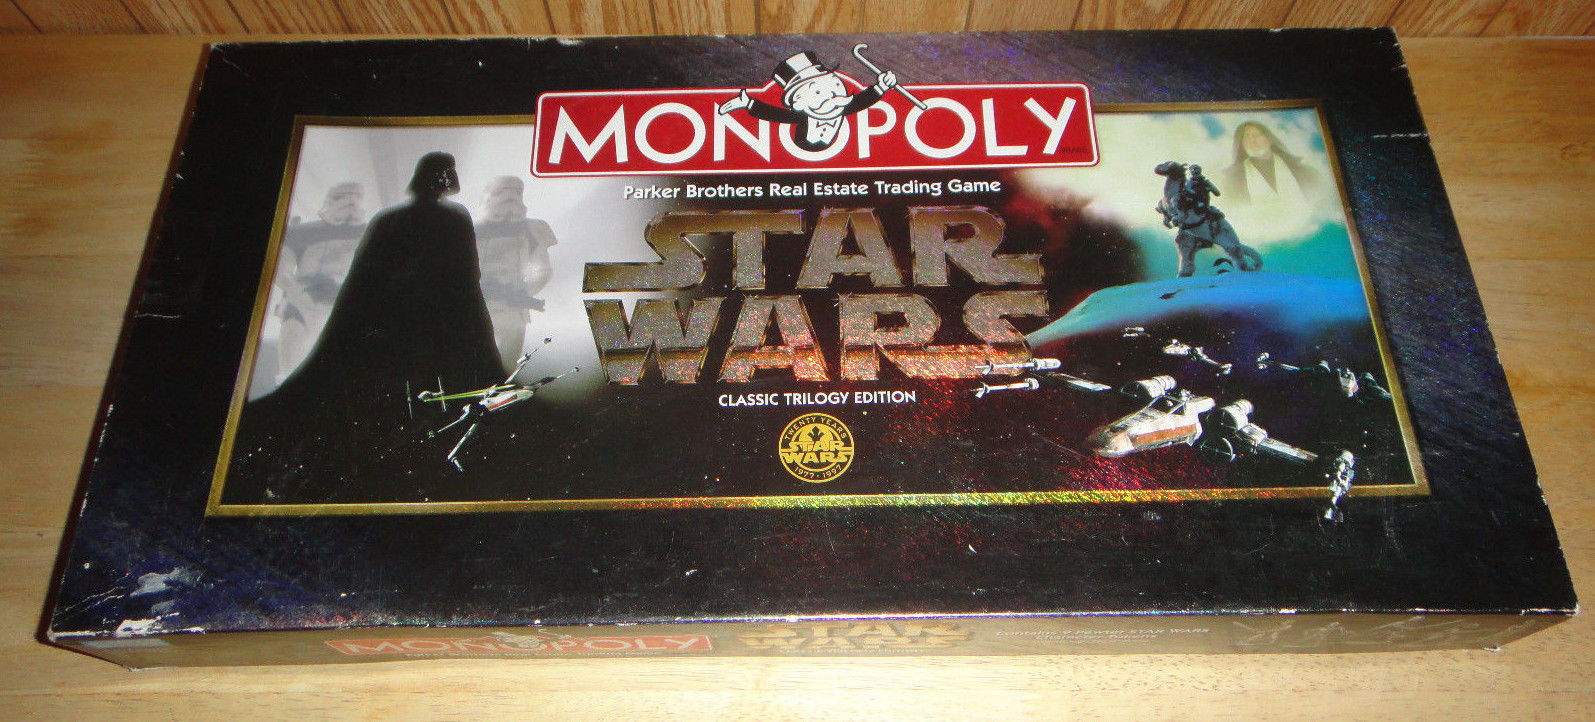 Primary image for Monopoly Star Wars Classic Trilogy Edition Board Game Parker Brothers Complete